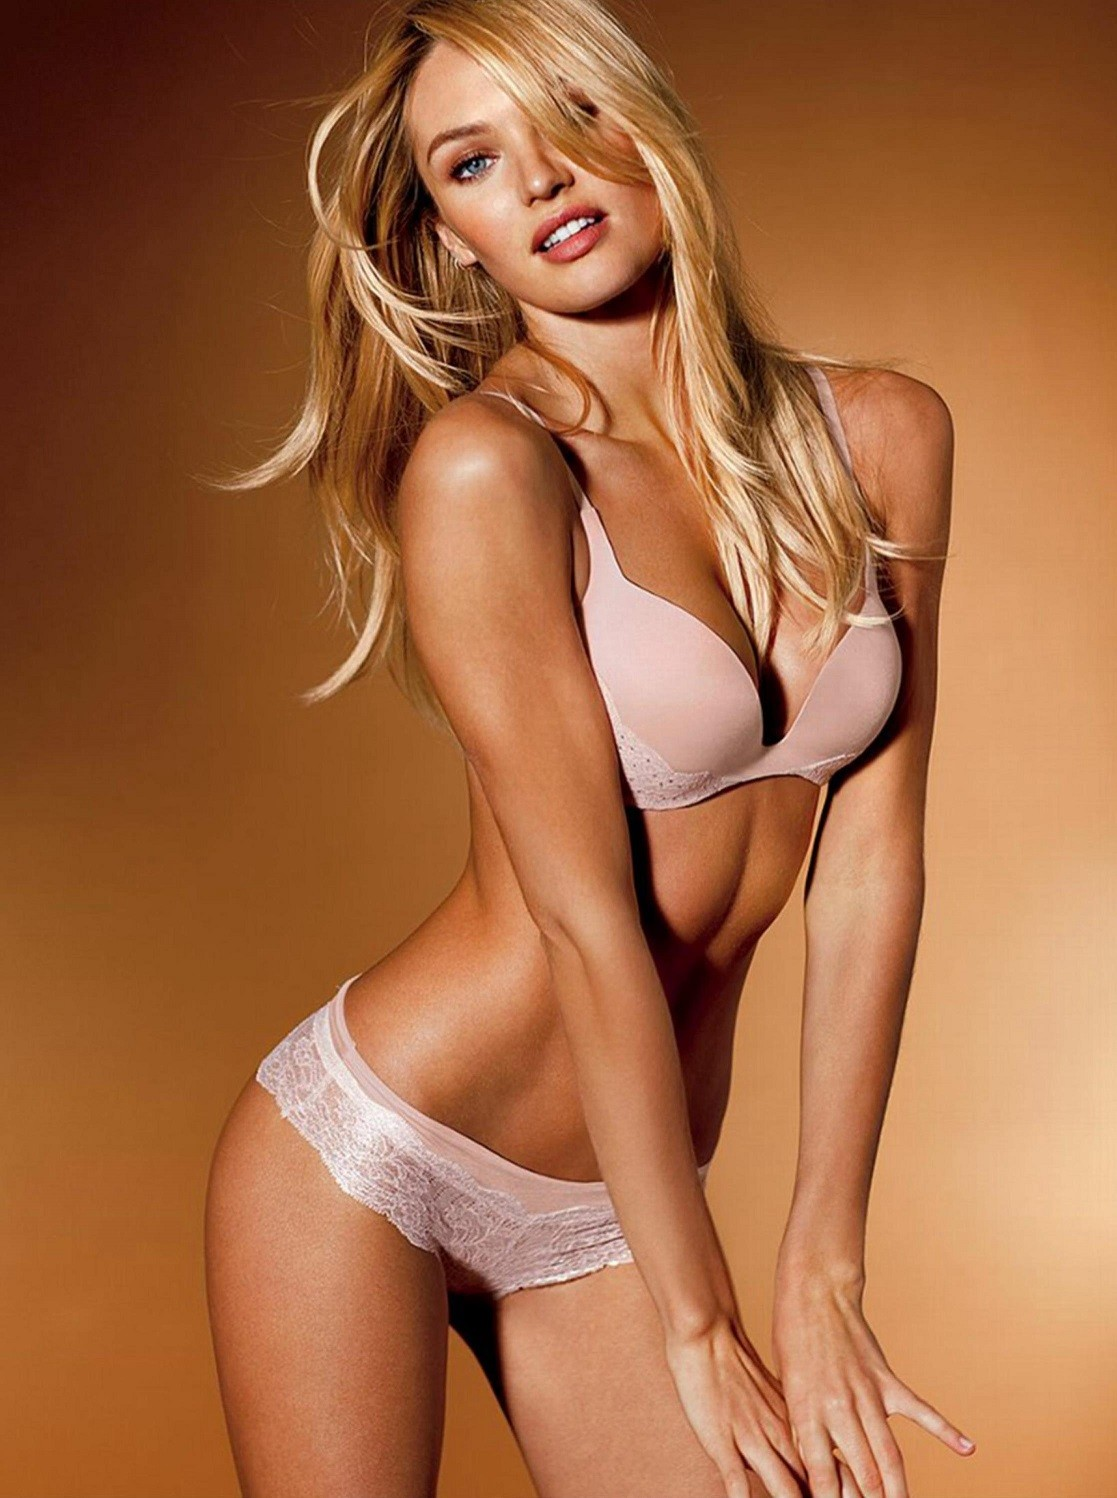 Sexy Candice Swanepoel - Only Tease Photo Shoot - Sexy Actress Pictures | Hot Actress Pictures